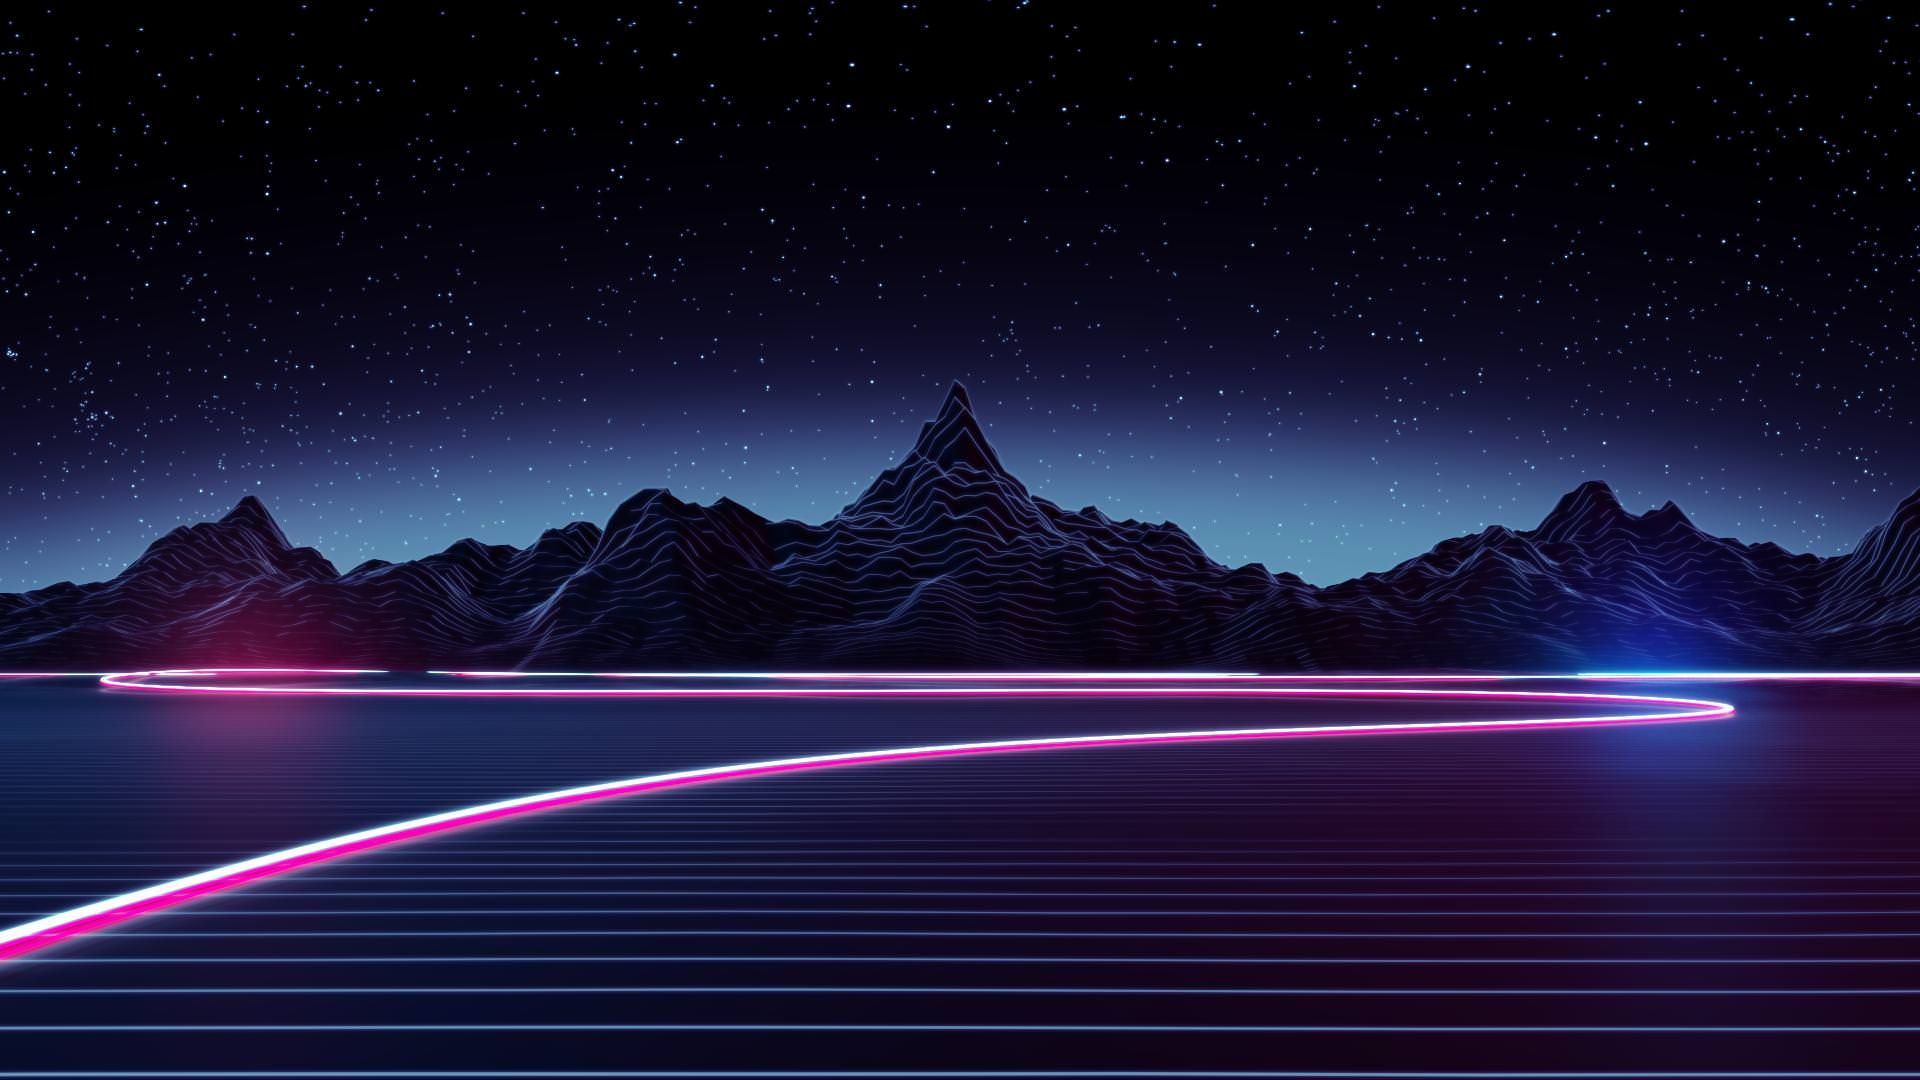 80 S Synthwave Outrun Wallpaper Dump 1080p Imgur Paysage